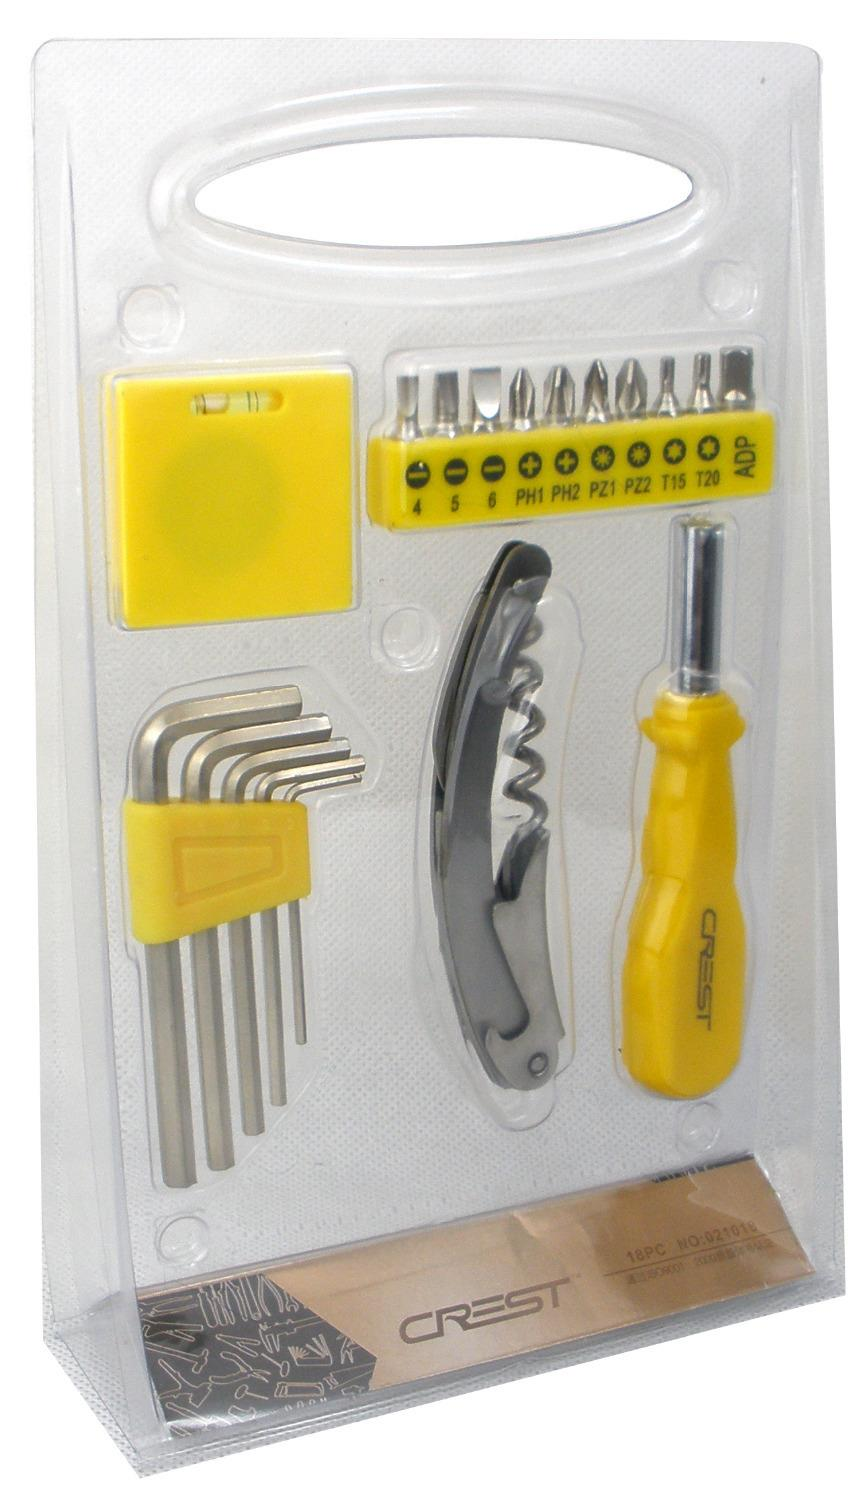 18PCS Electrician Repair Mini Hand Home Tool Kit&amp; Cabinet Auto Home Repair Kit with Free Shipping<br><br>Aliexpress